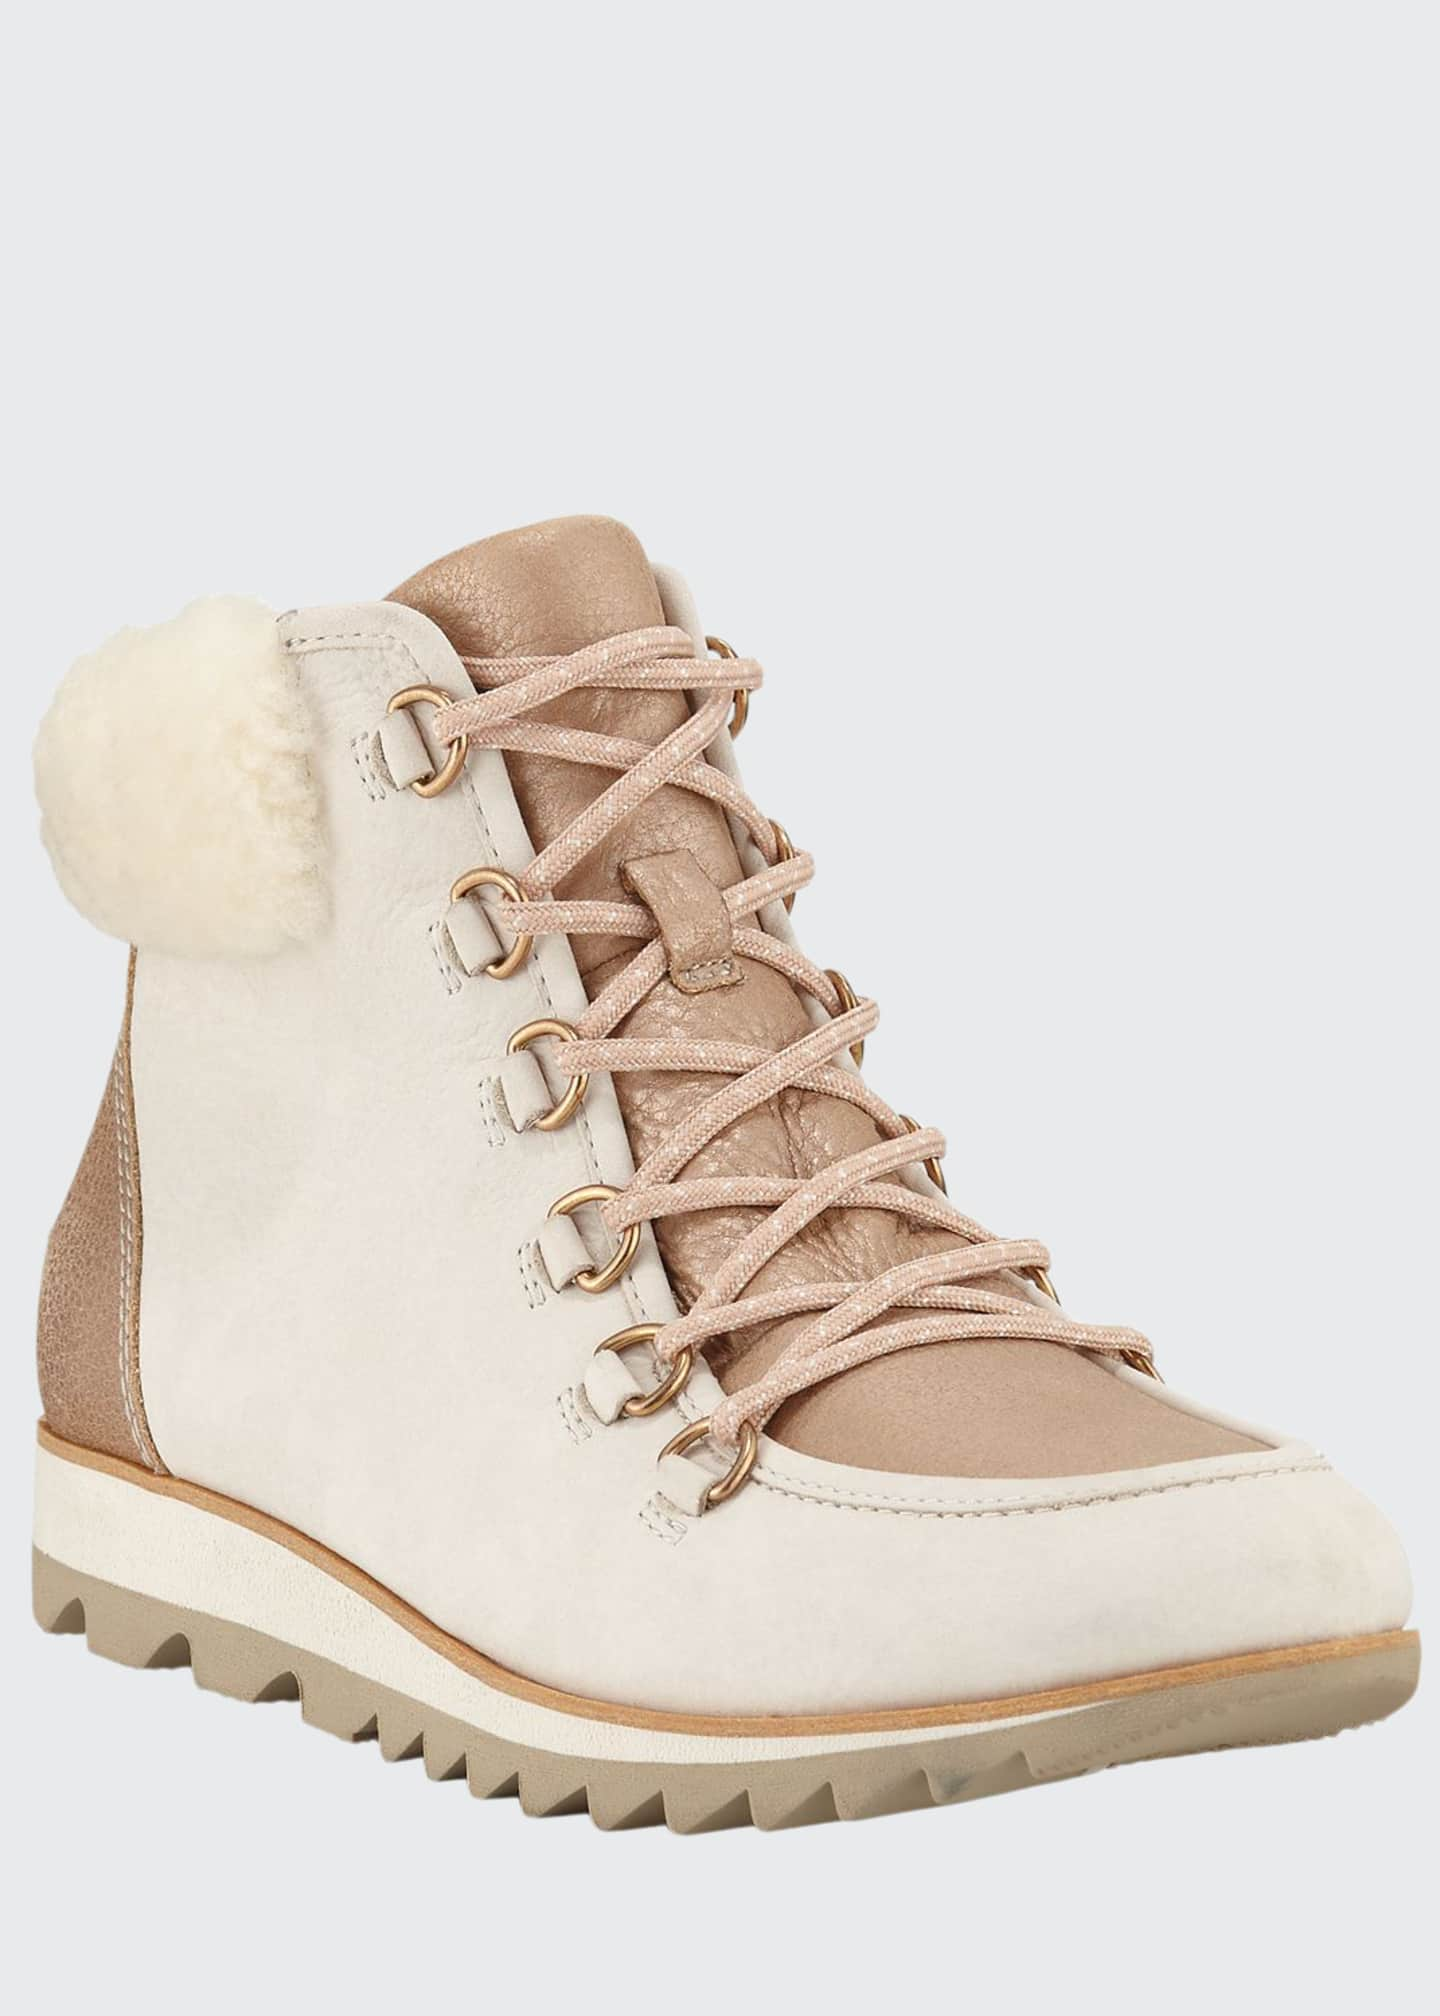 Sorel Harlow Lace-Up Lux Boots